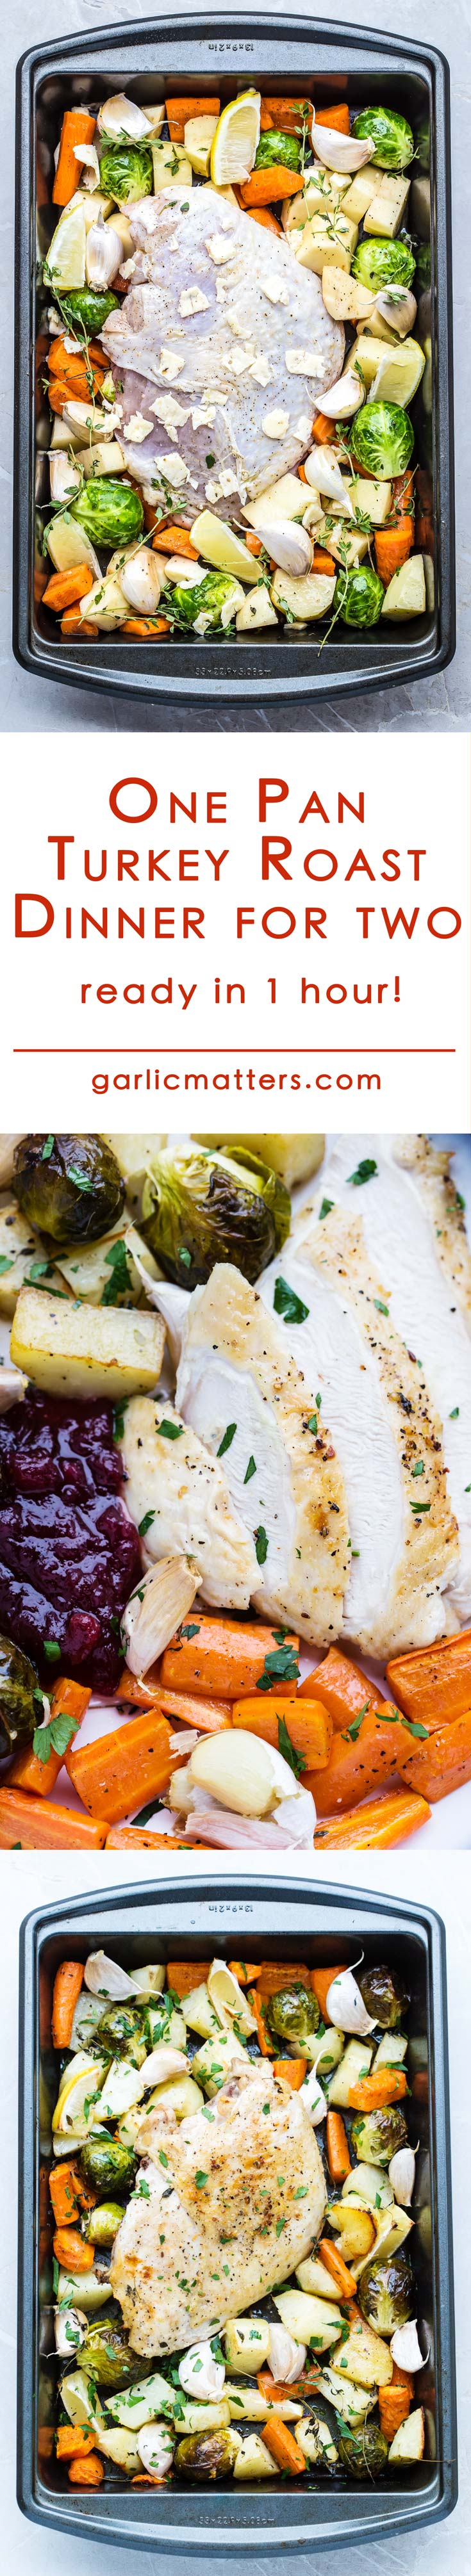 One Pan Turkey Roast Dinner for two is an easy, traditional Christmas meal recipe idea with vegetables ready in 1 hour. Yes! I'm saying you don't have to slave all day in the kitchen to serve a delicious roast! It is so simple! Serves 2 or double the recipe for 4!